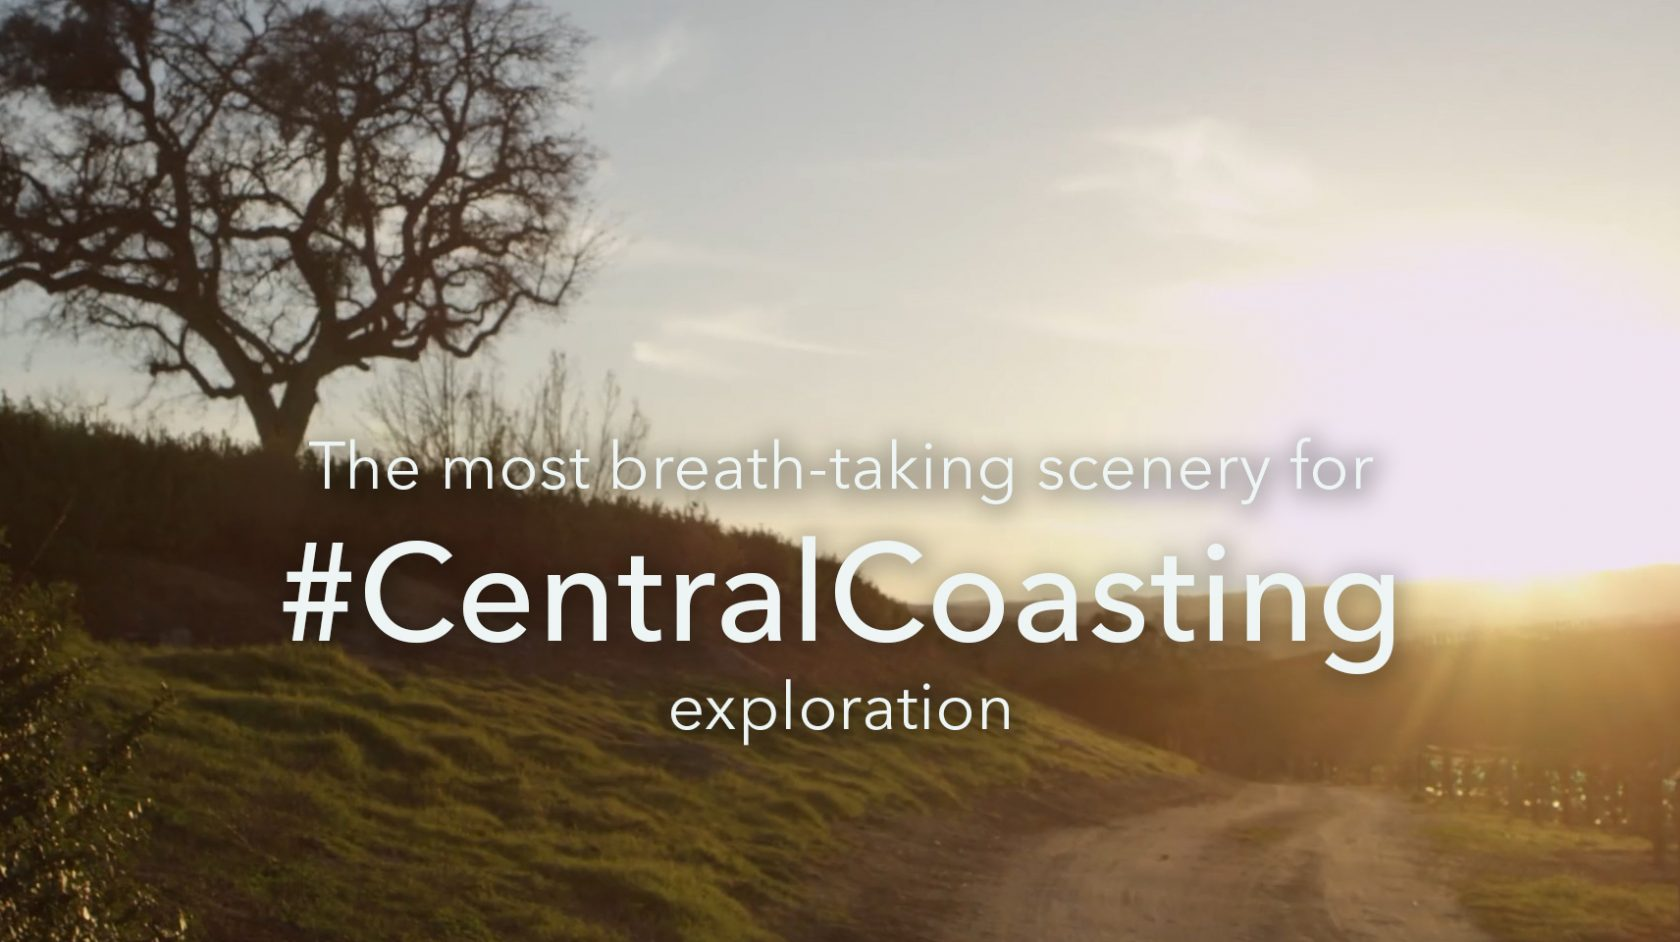 Central Coasting Exploration with beautiful scenery